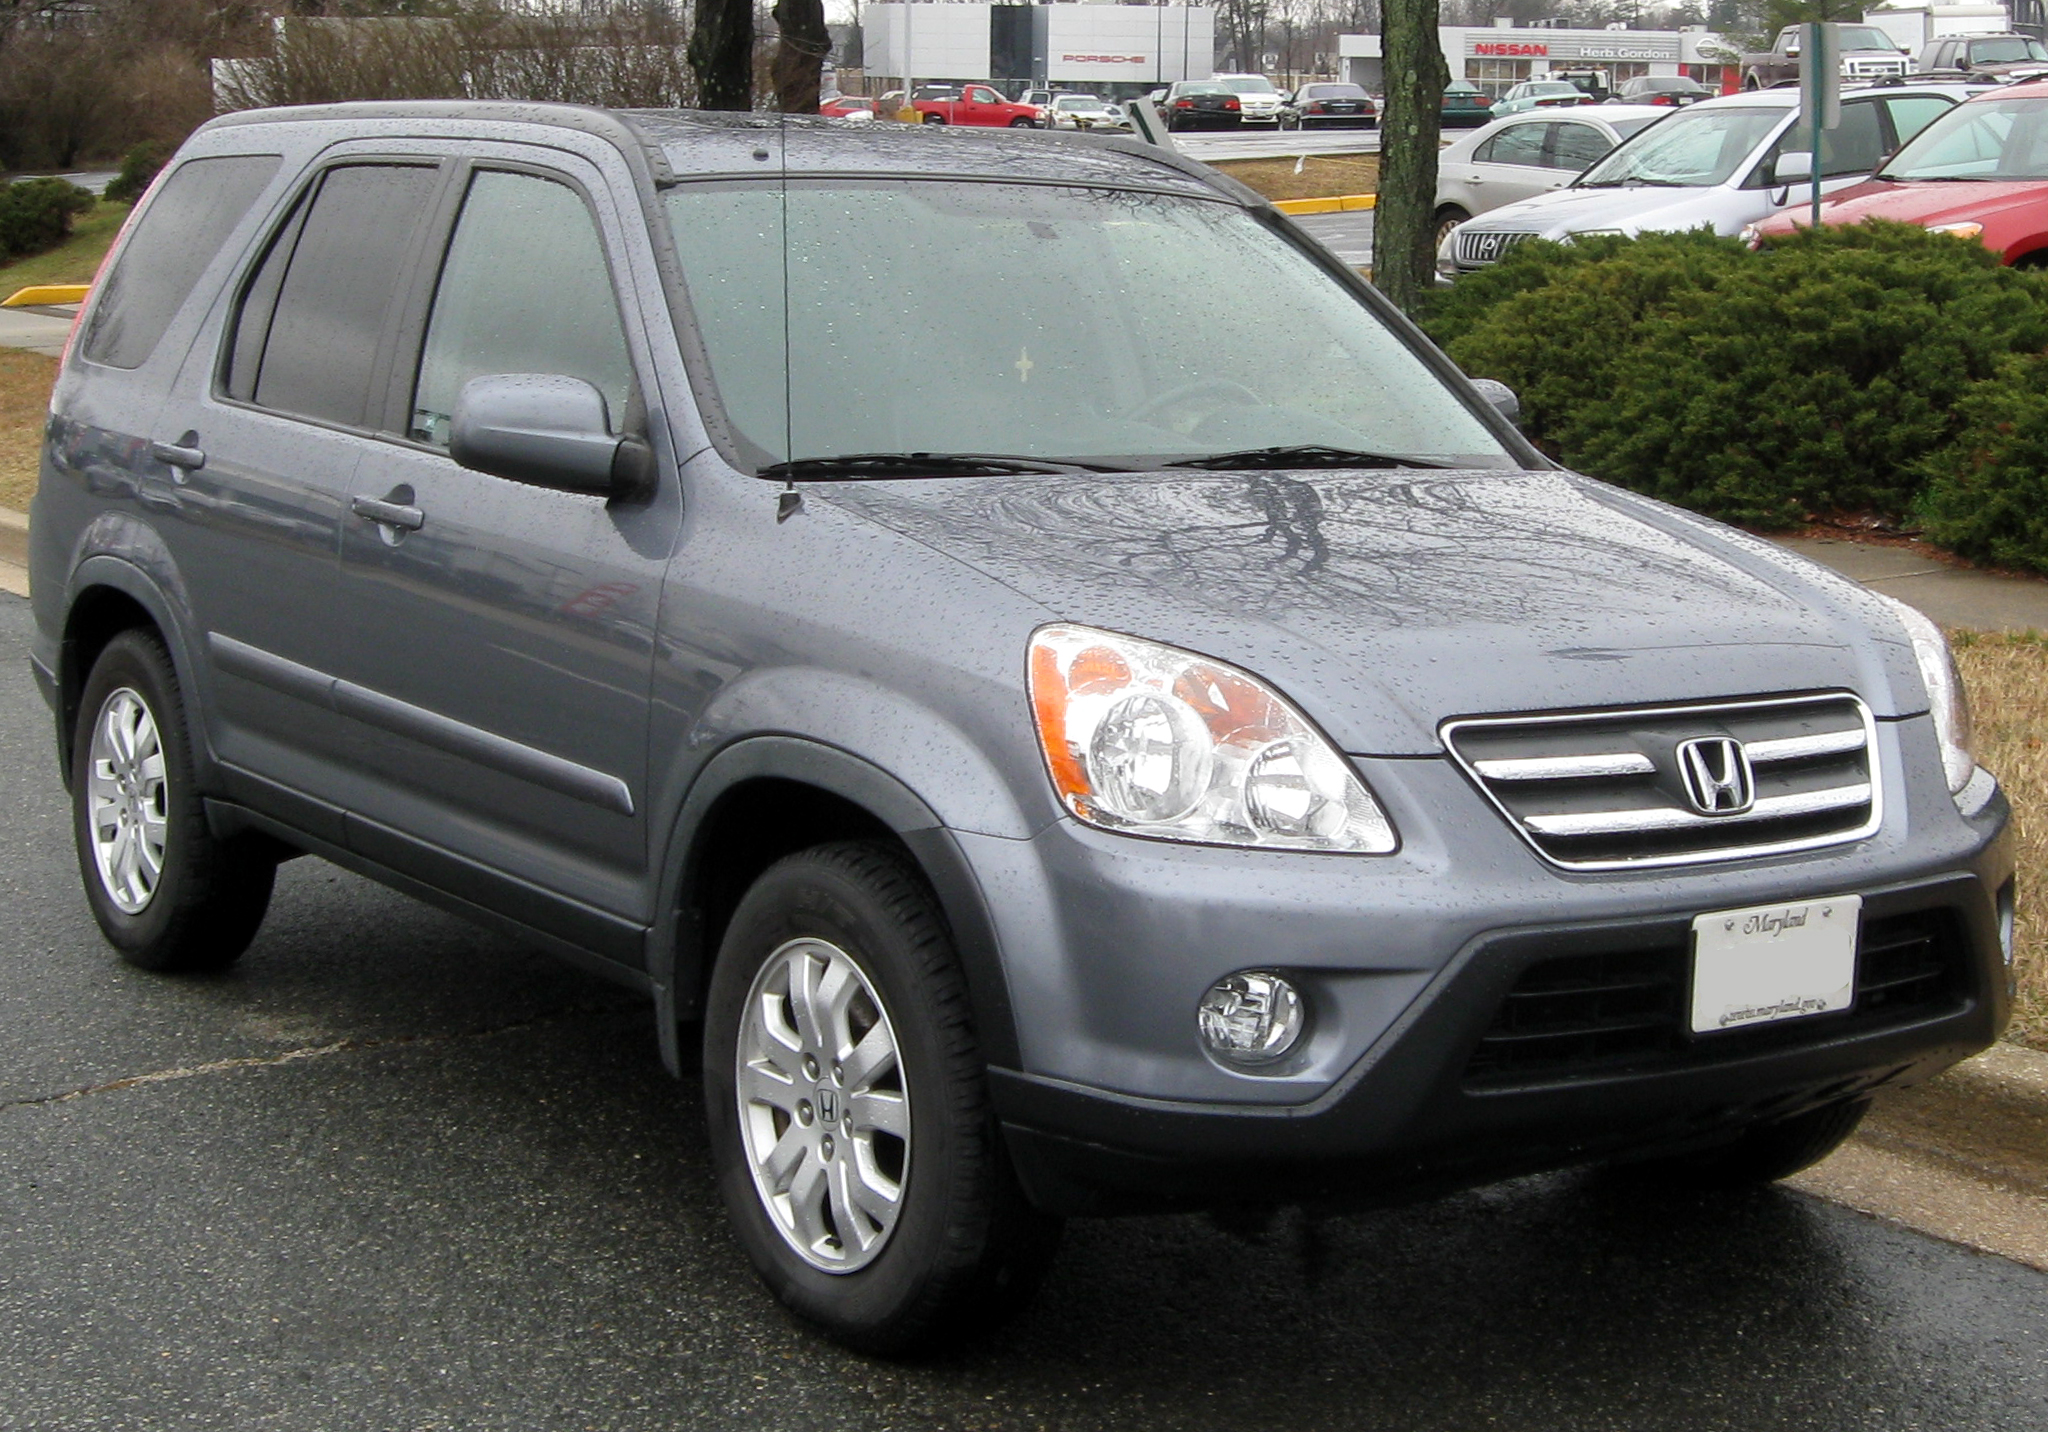 2006 Honda Cr V Information And Photos Zombiedrive Accord Dome Light Wiring 15